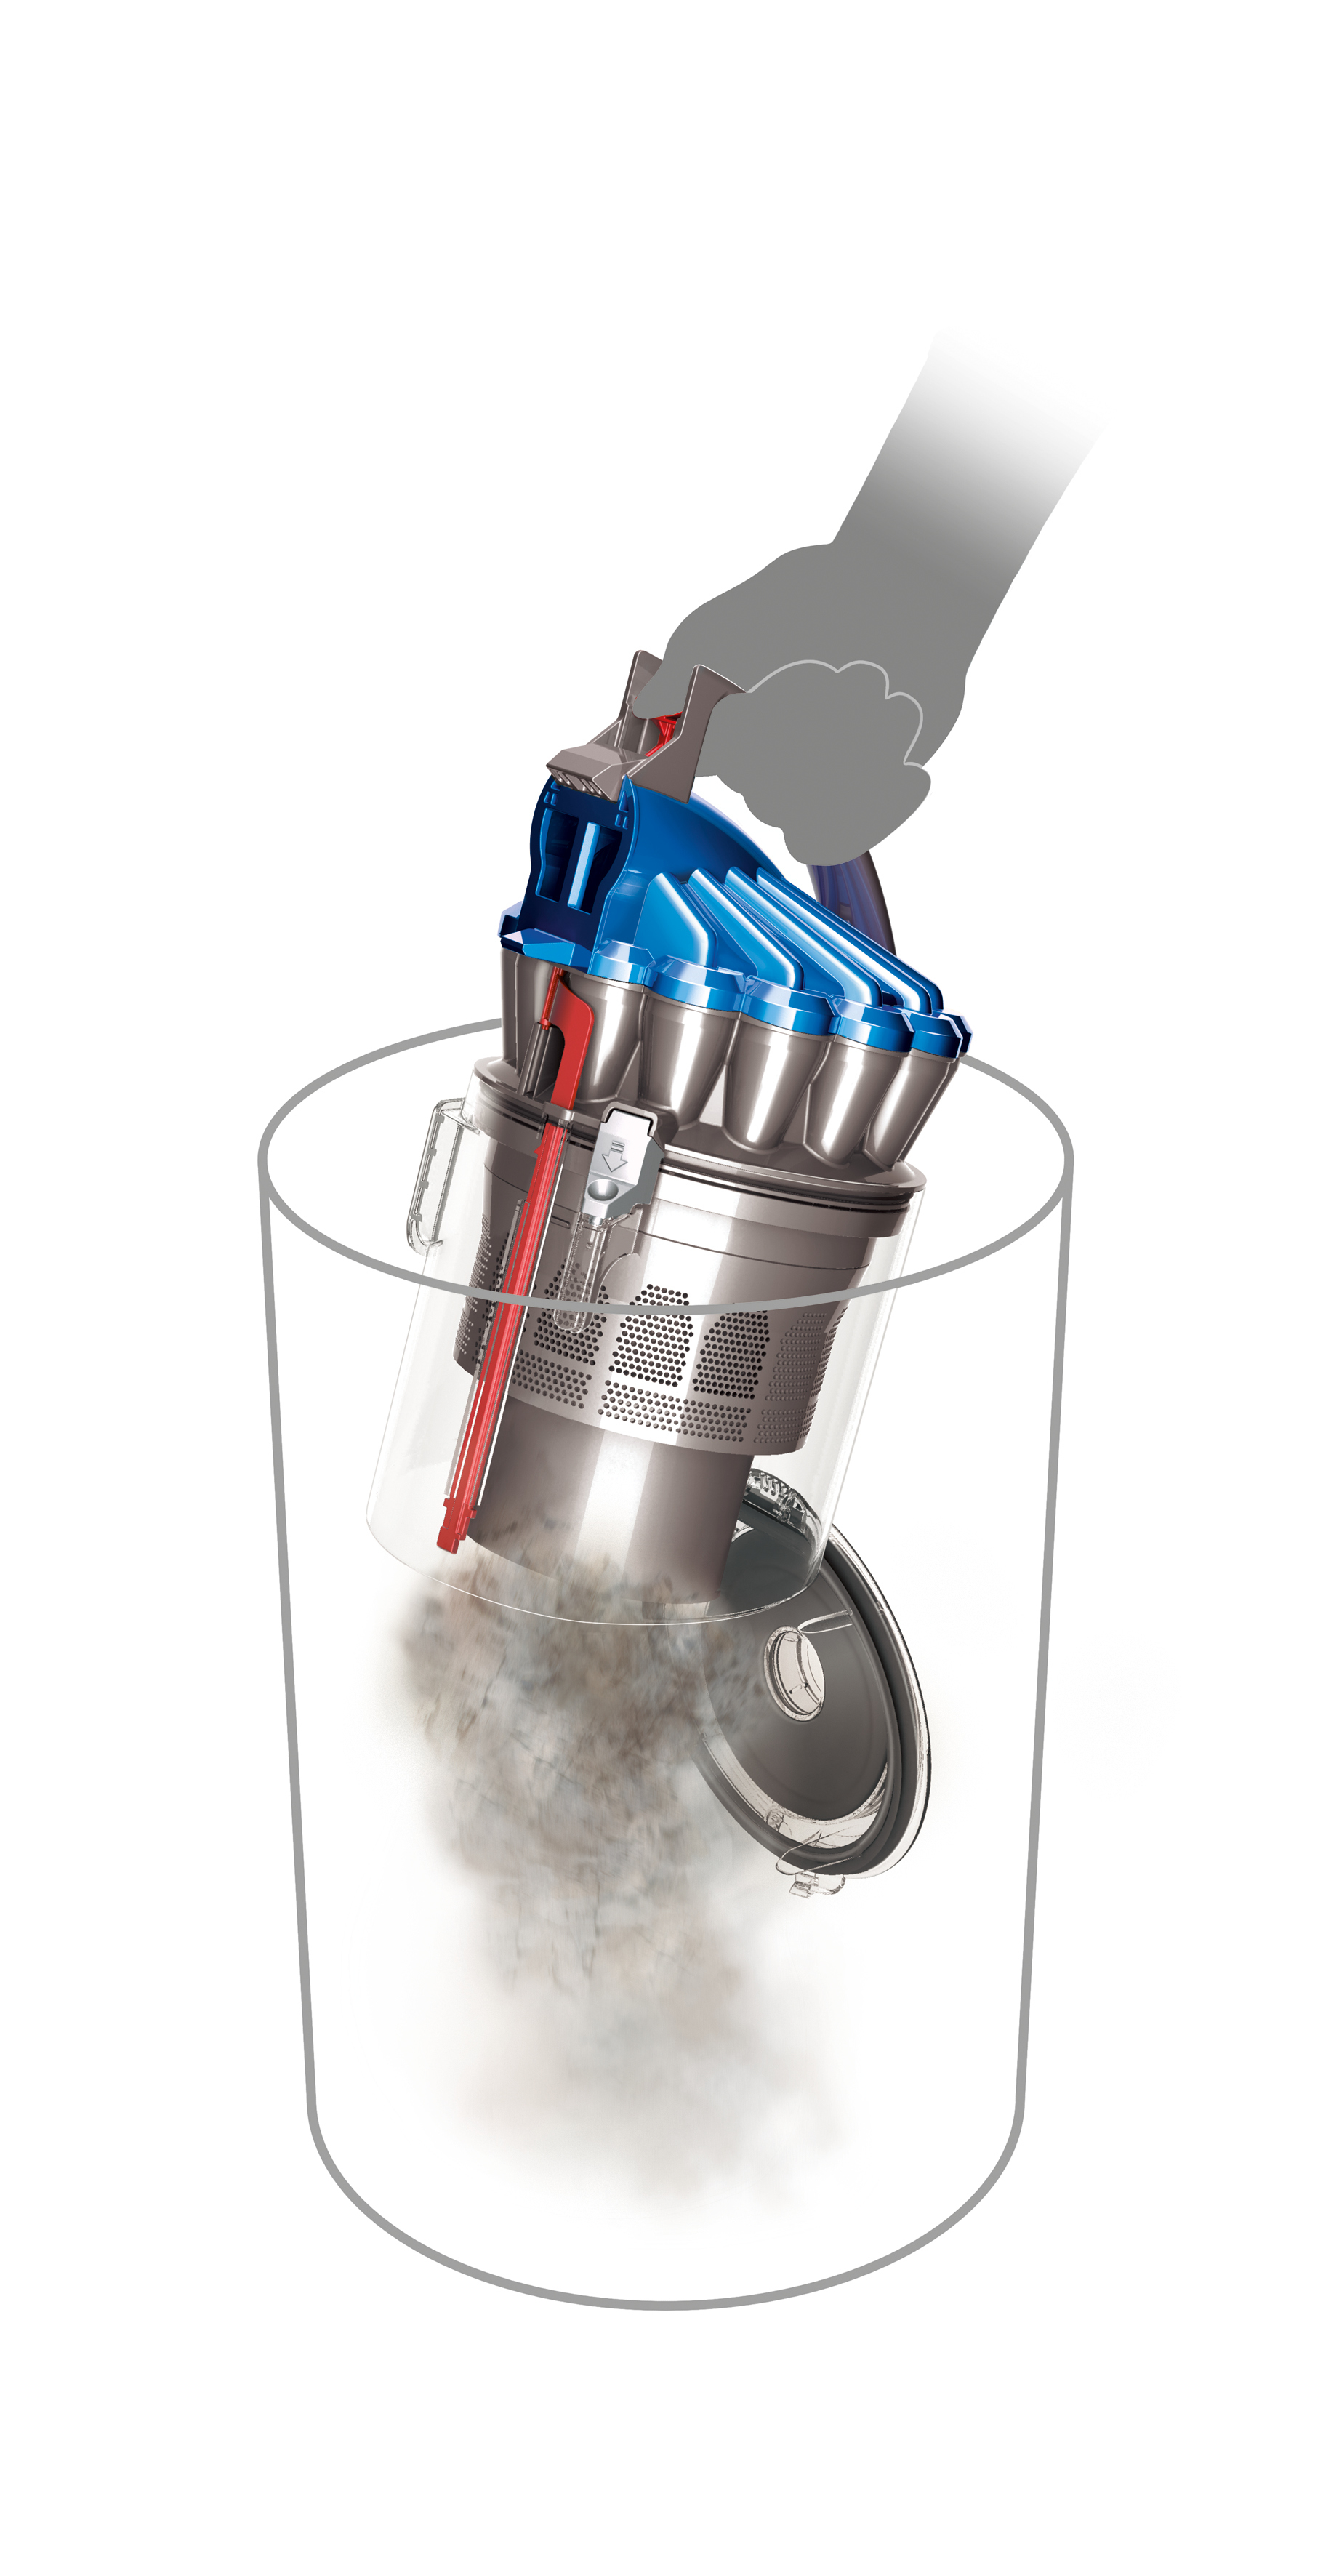 Refurbished dyson dc23 turbinehead canister vacuum for Dyson dc23 motor stopped working